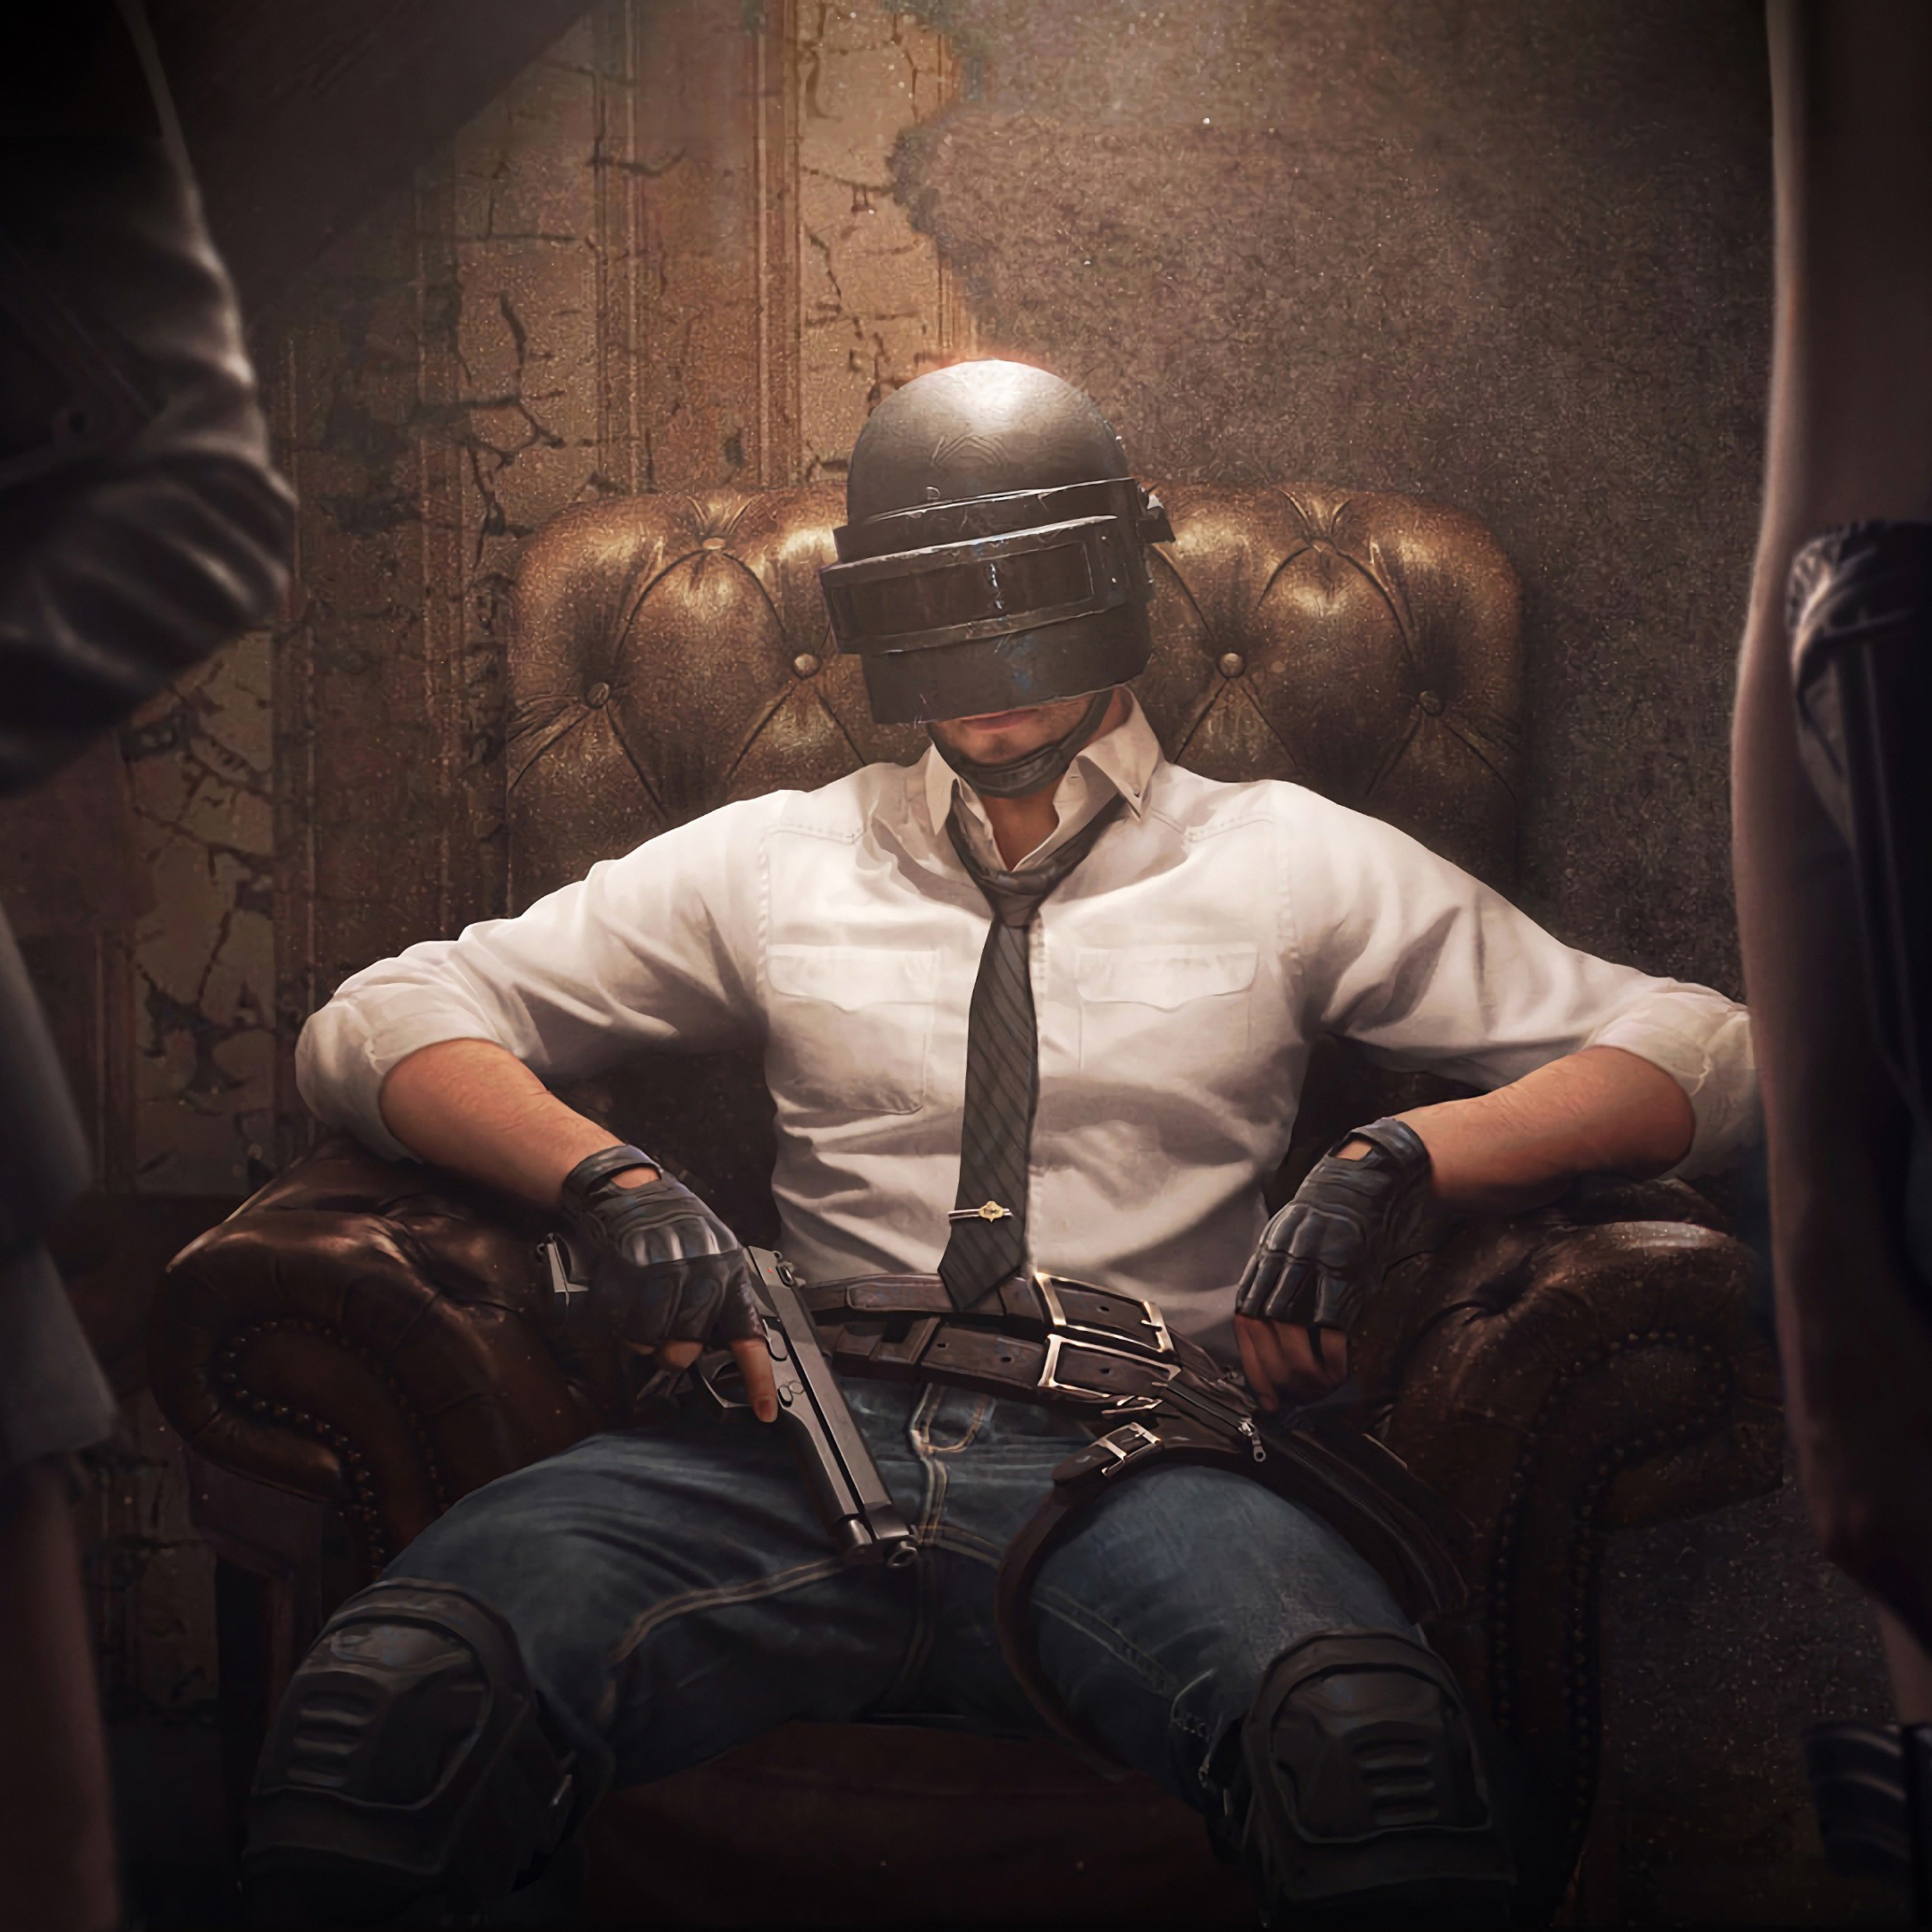 2932x2932 Pubg Android Game 4k Ipad Pro Retina Display HD 4k Wallpapers Images Backgrounds